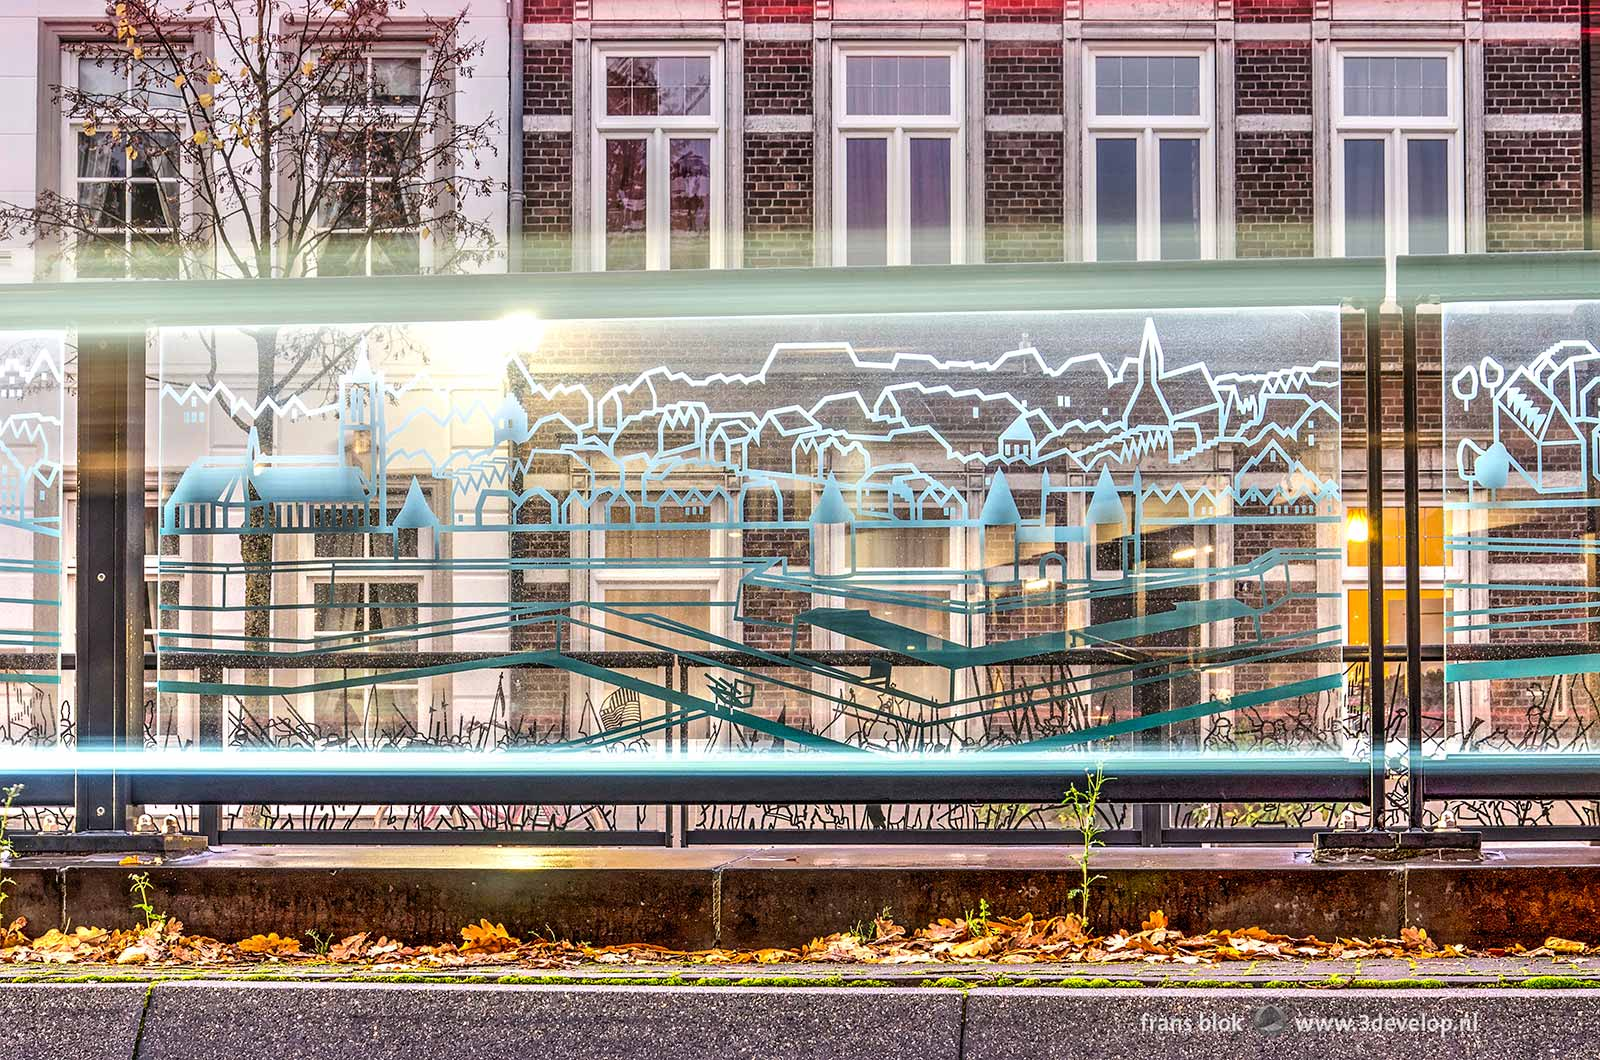 Detail of a glass panel with a print of the historic fortifications at Koninginneplein in Venlo, The Netherlands